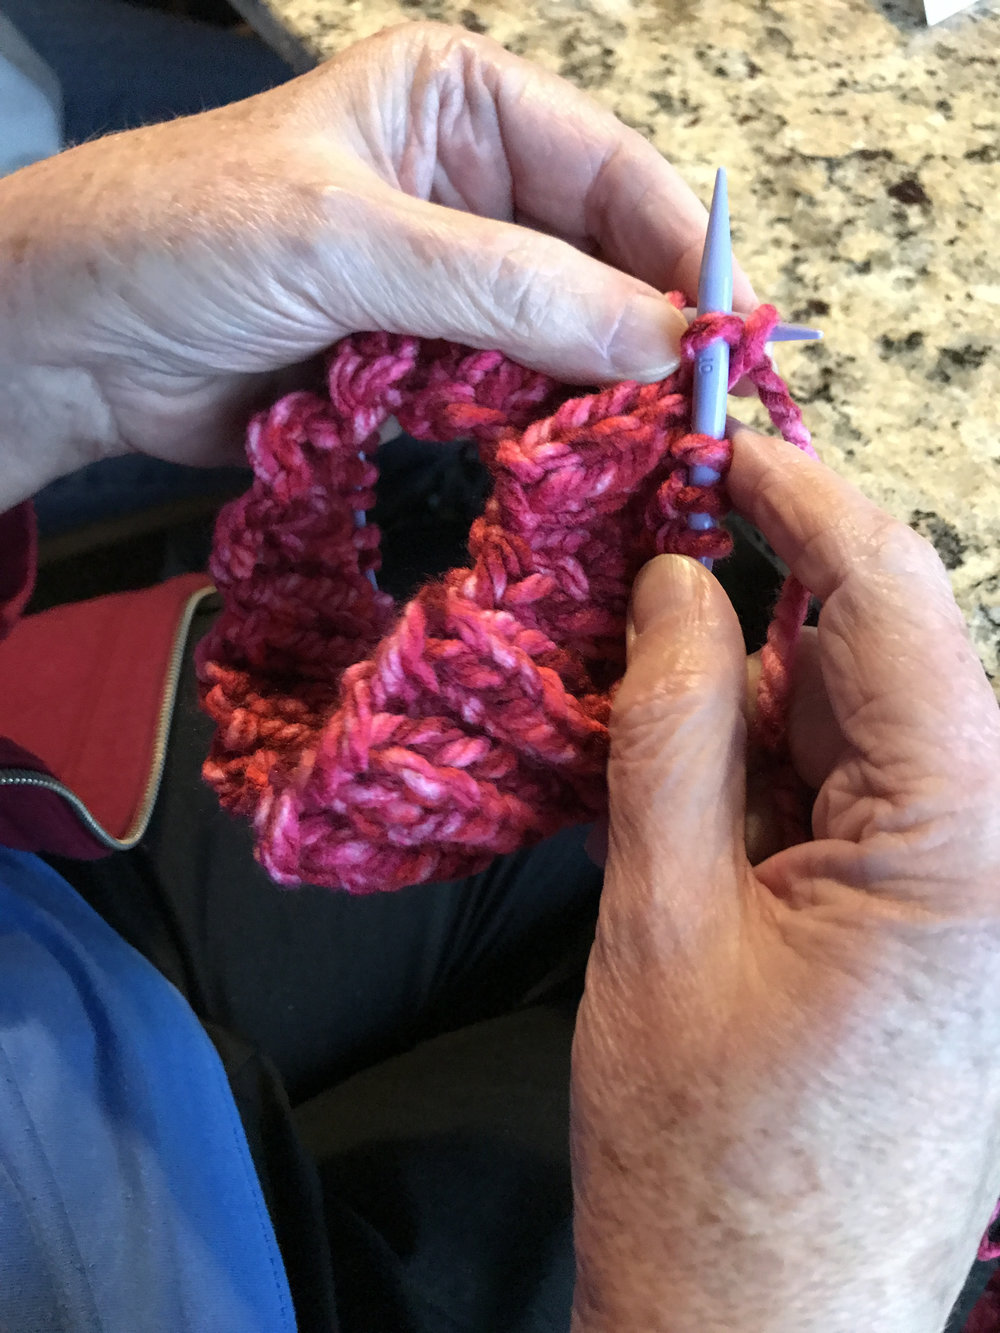 Jean was working her knitting needles